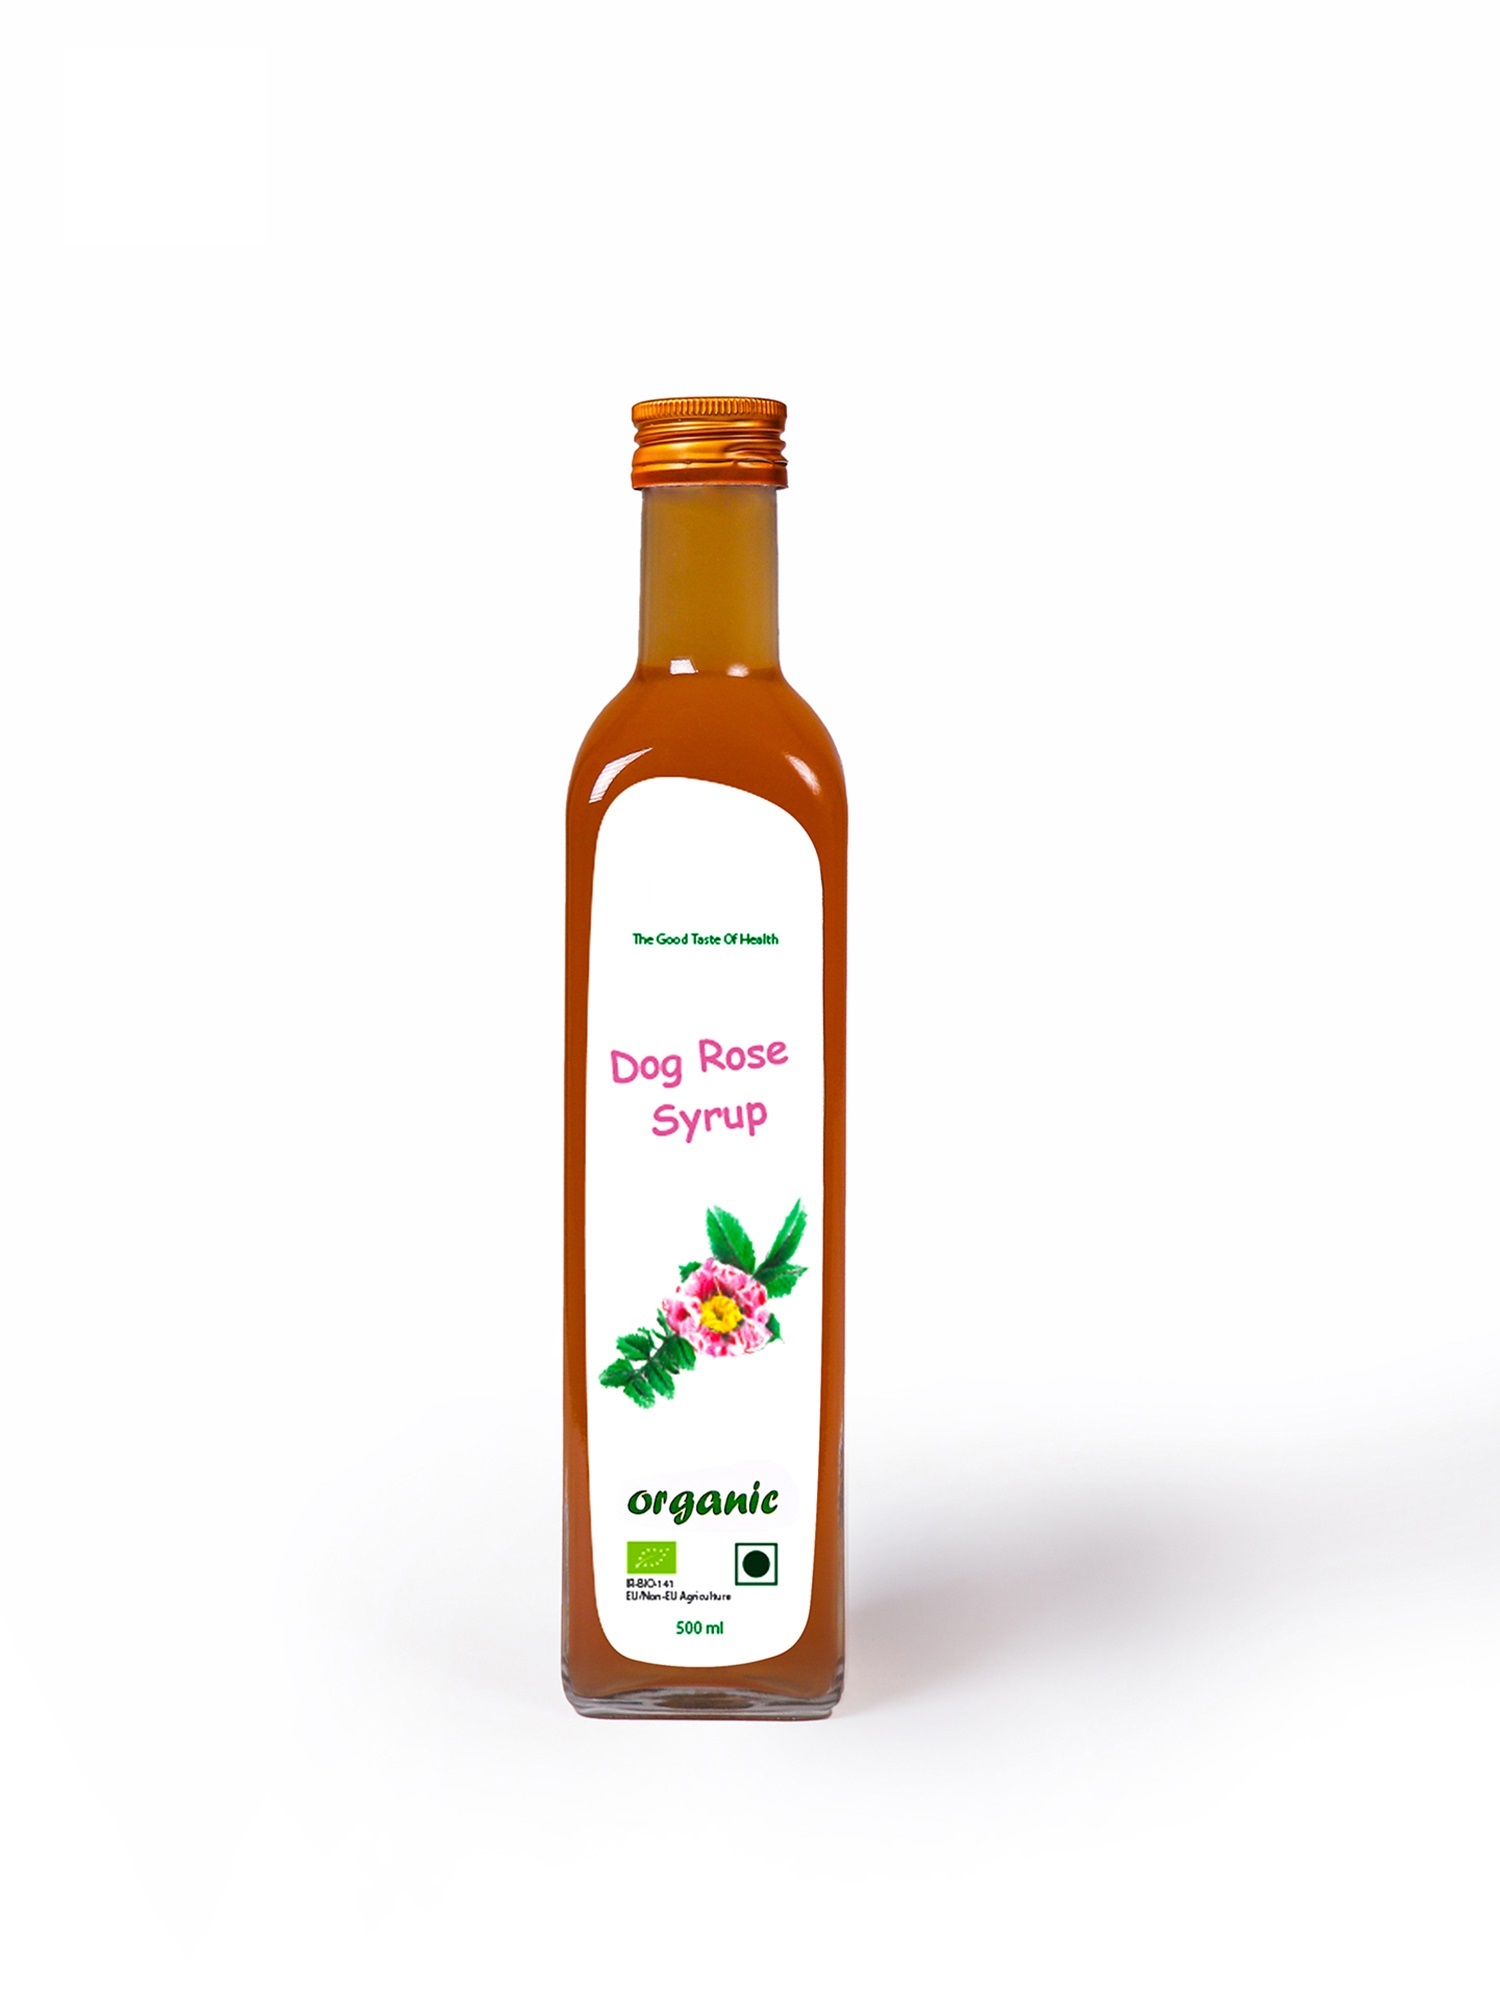 Dog Rose Syrup